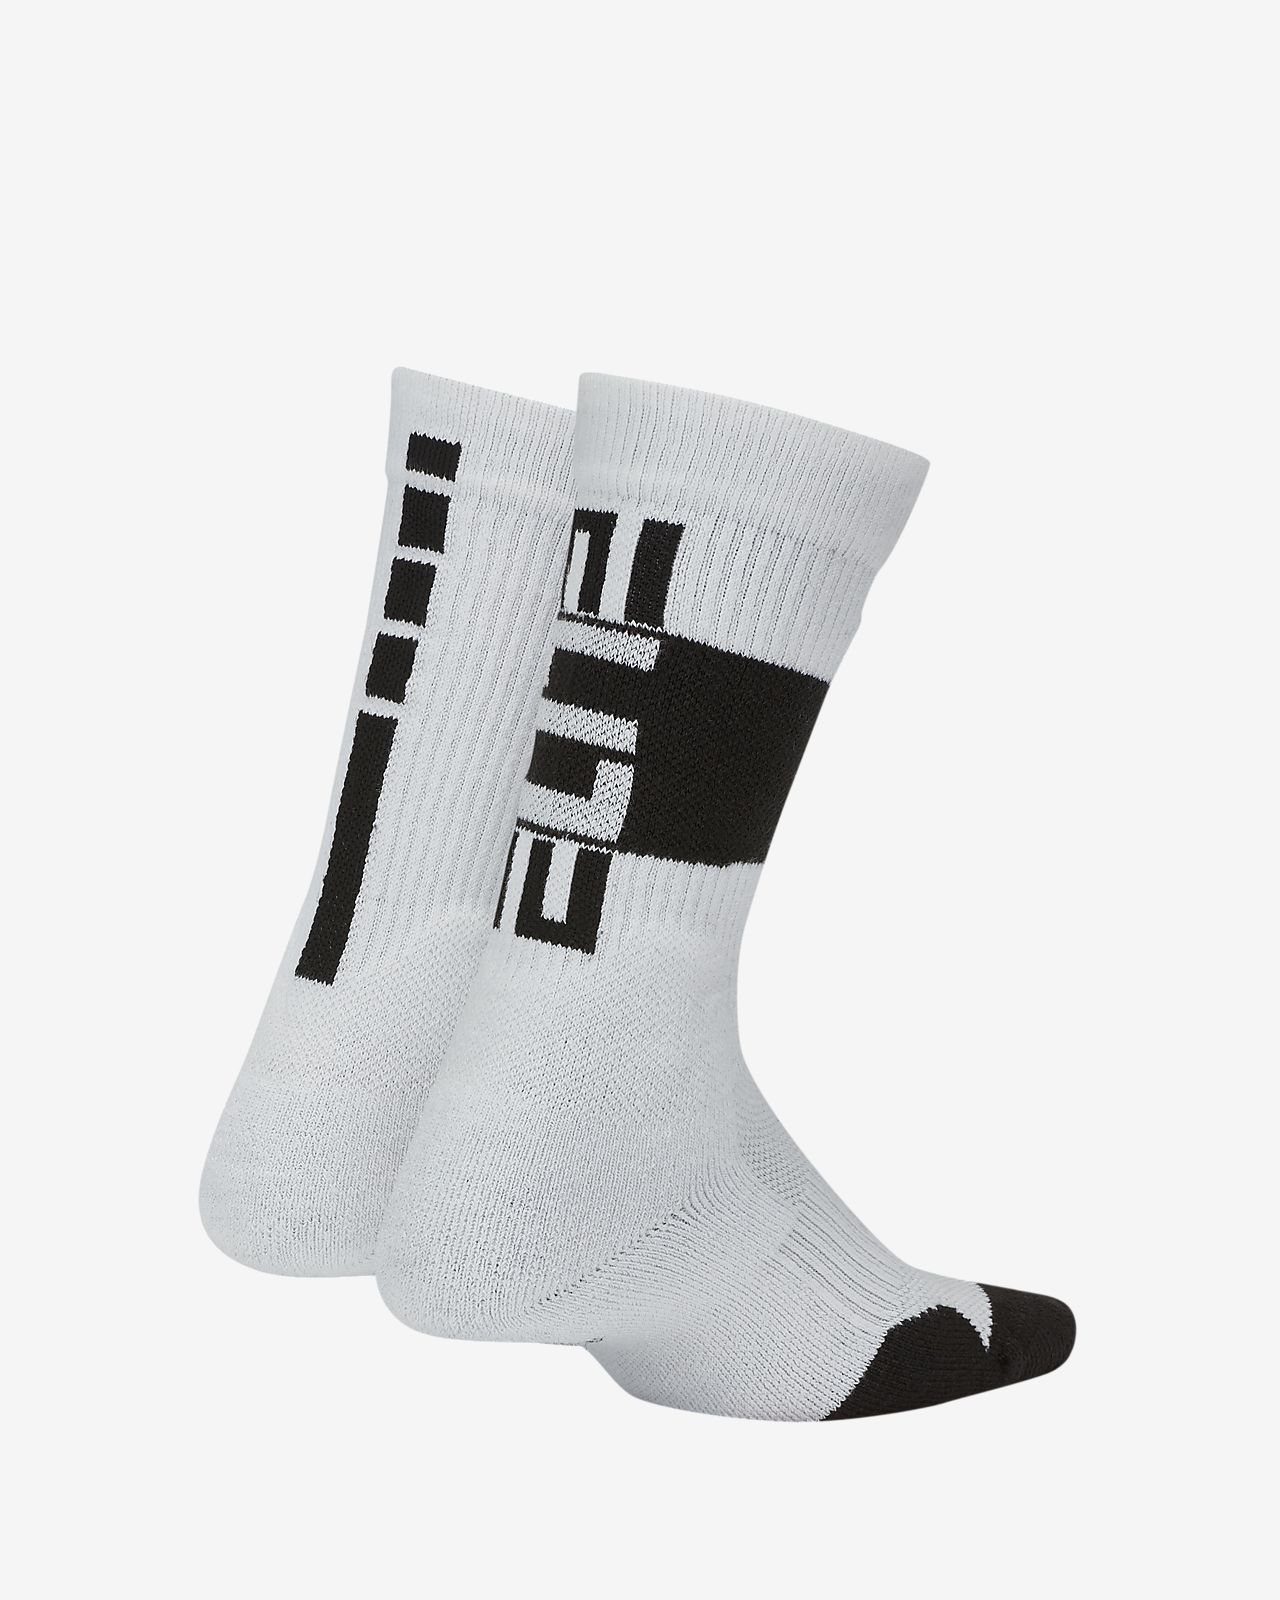 Nike Elite Big Kids' Crew Socks (2 Pairs)